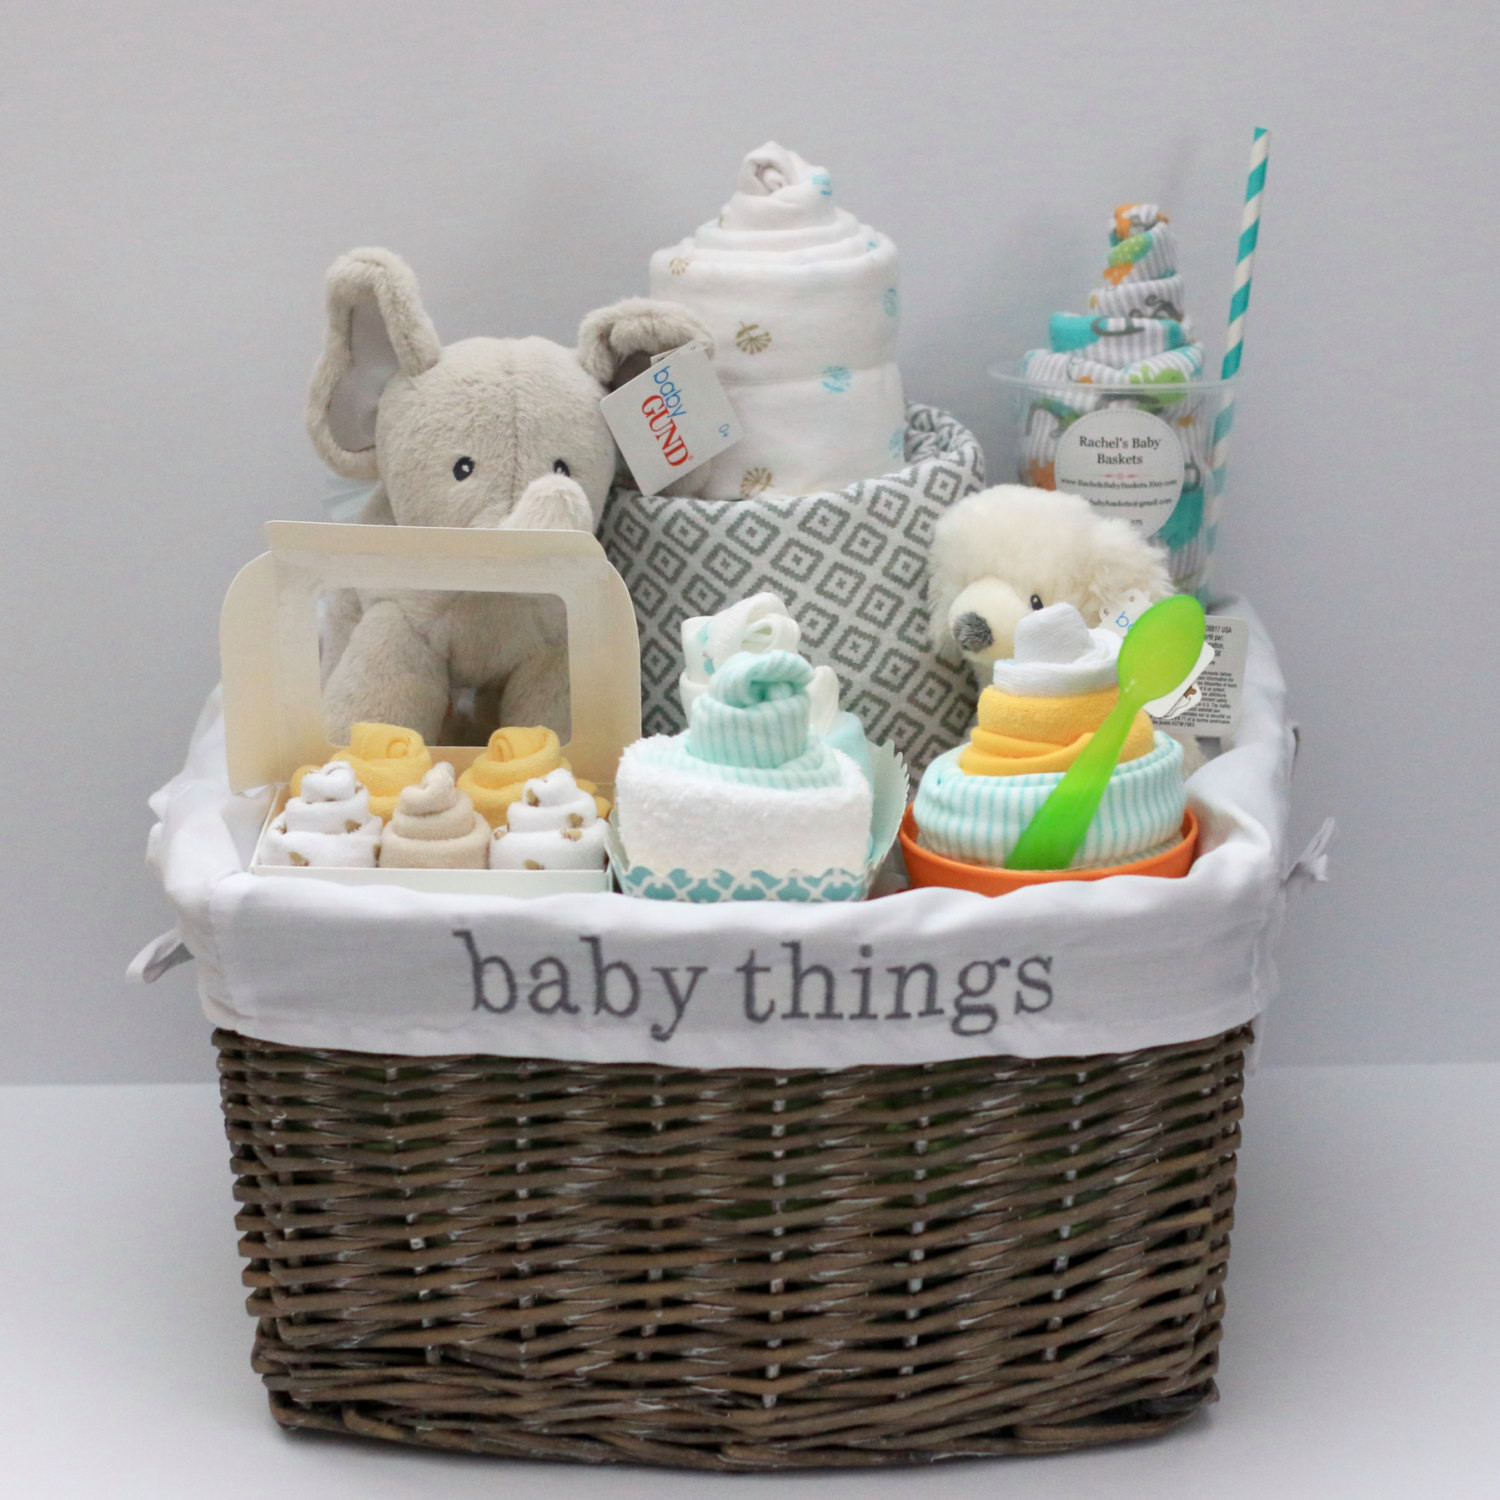 Gift Ideas For A Baby Shower  Gender Neutral Baby Gift Basket Baby Shower Gift Unique Baby